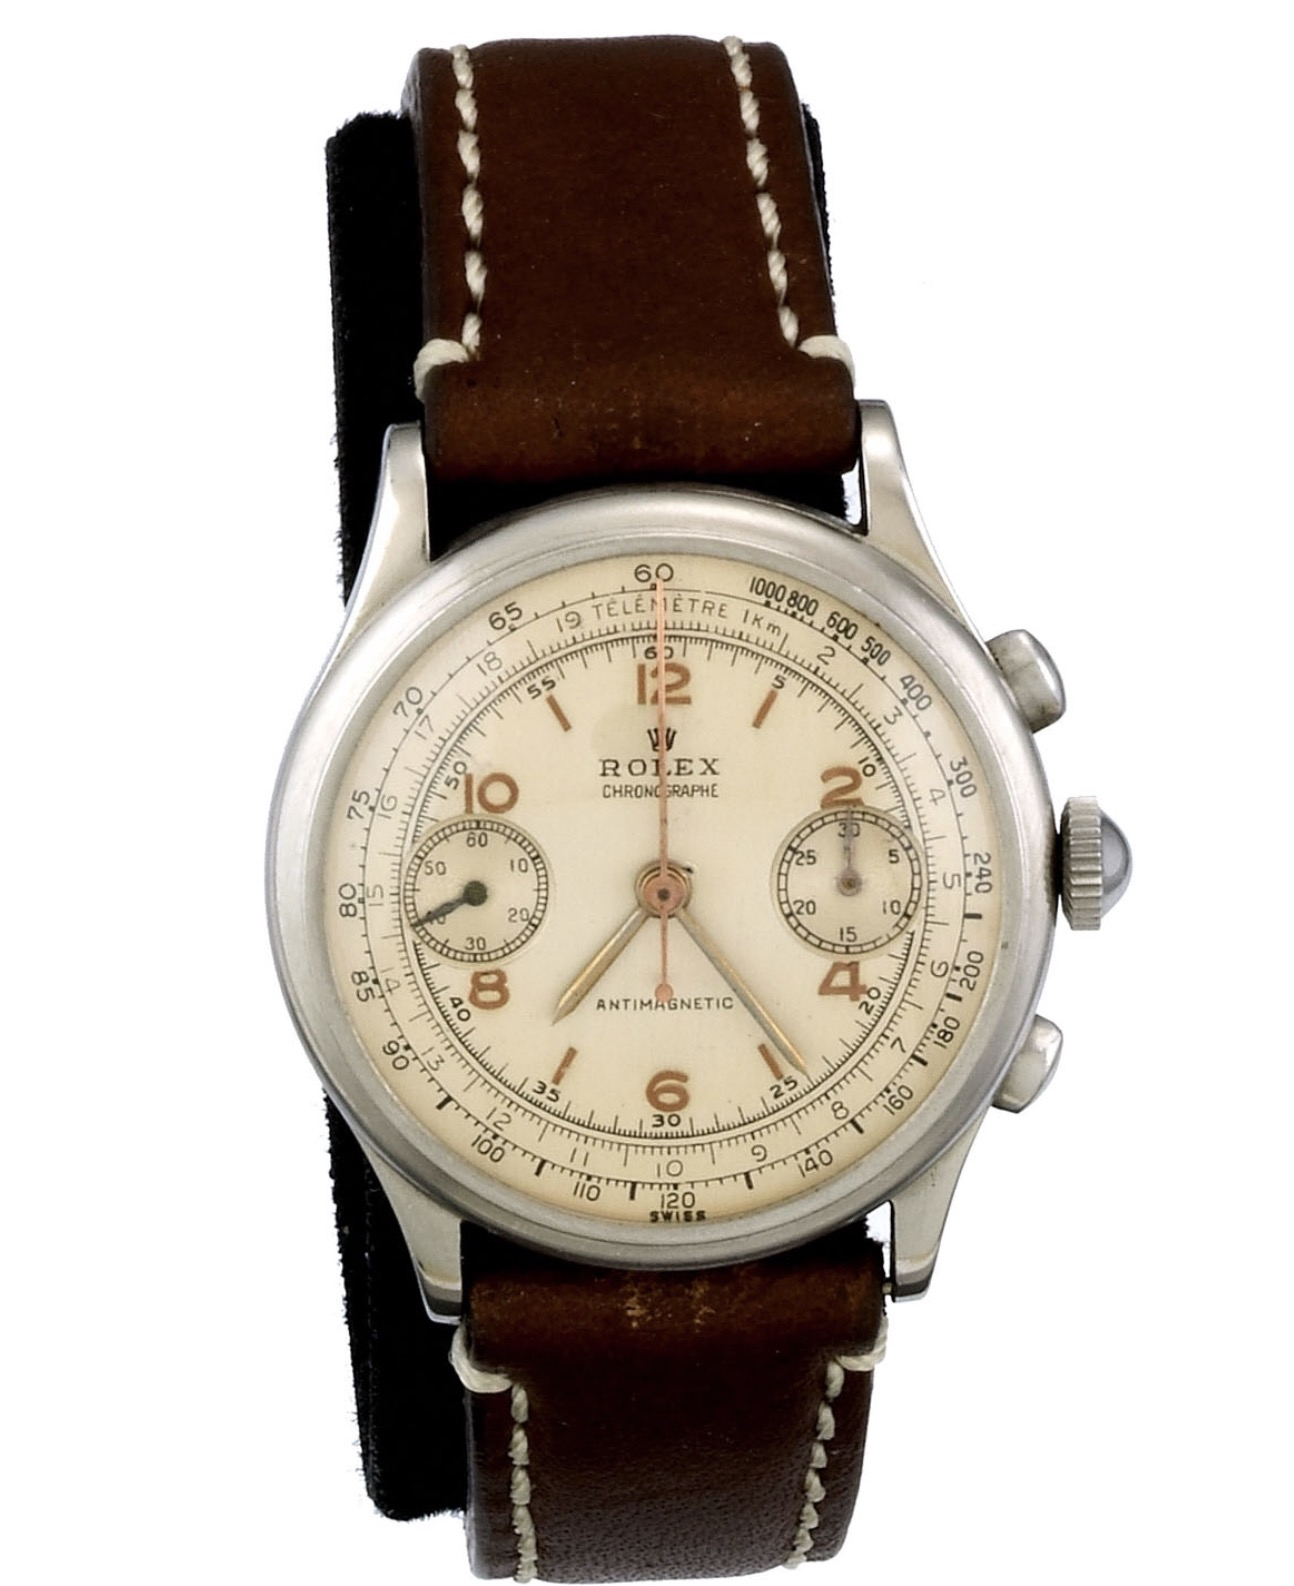 Watch Rolex Chronograph Antimagnetic. Tampa Jewelry Store Watch Repair